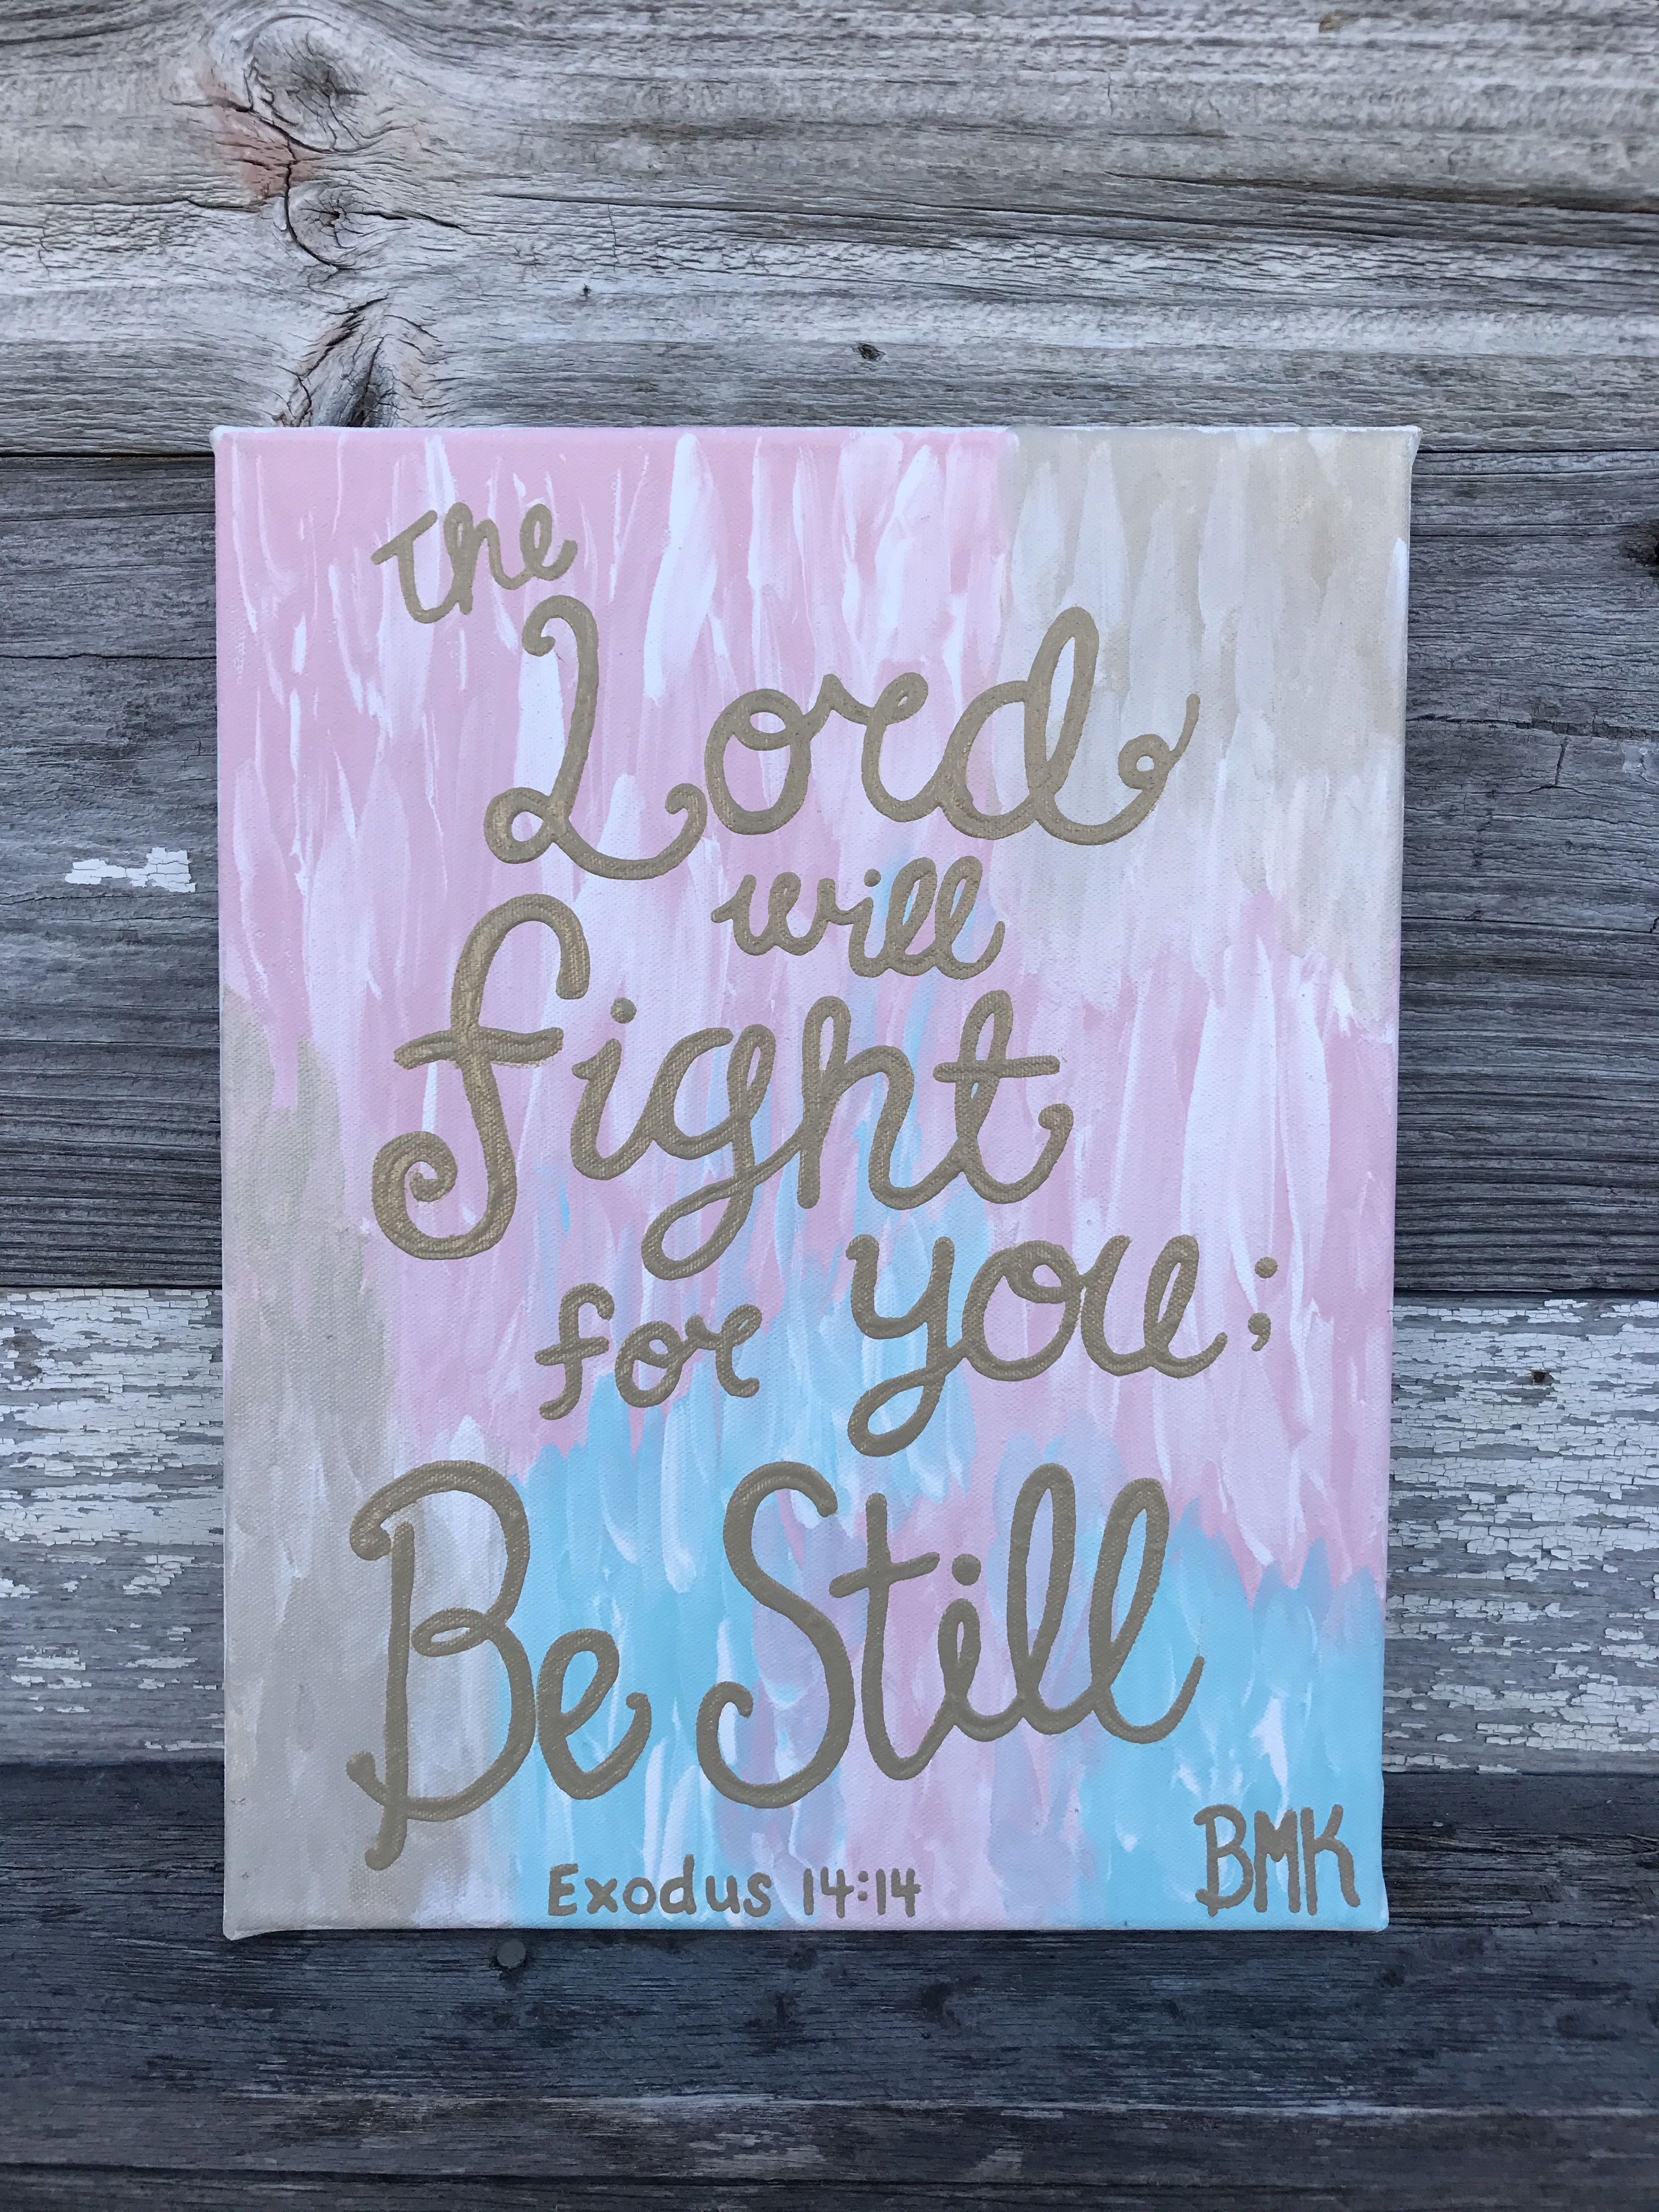 The Lord Will Fight For You, Be Still -- Exodus